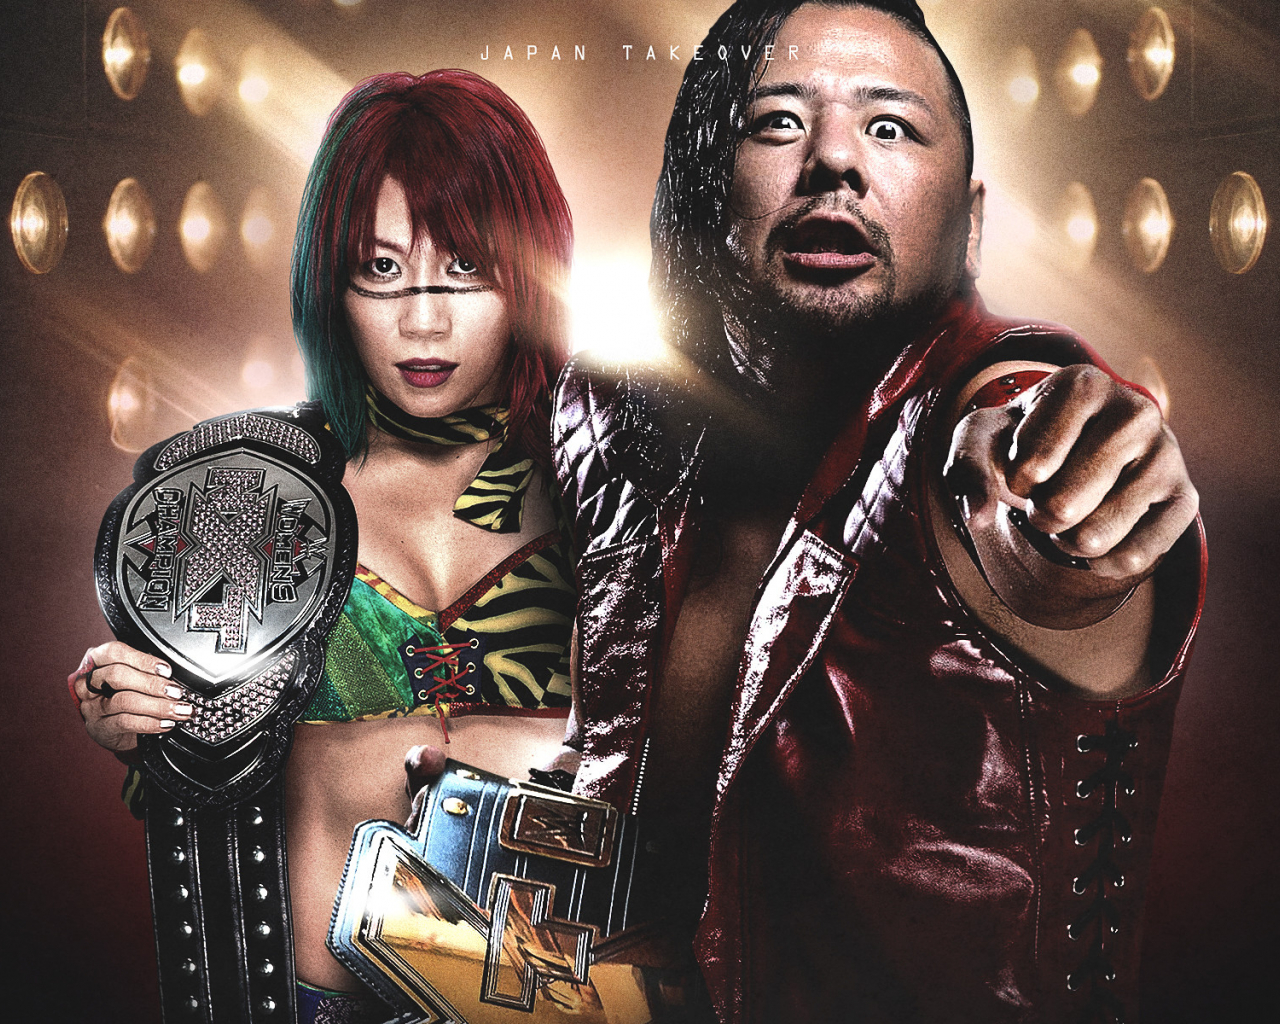 Free Download Wwe Asuka Wallpaper 85 Images 1920x1200 For